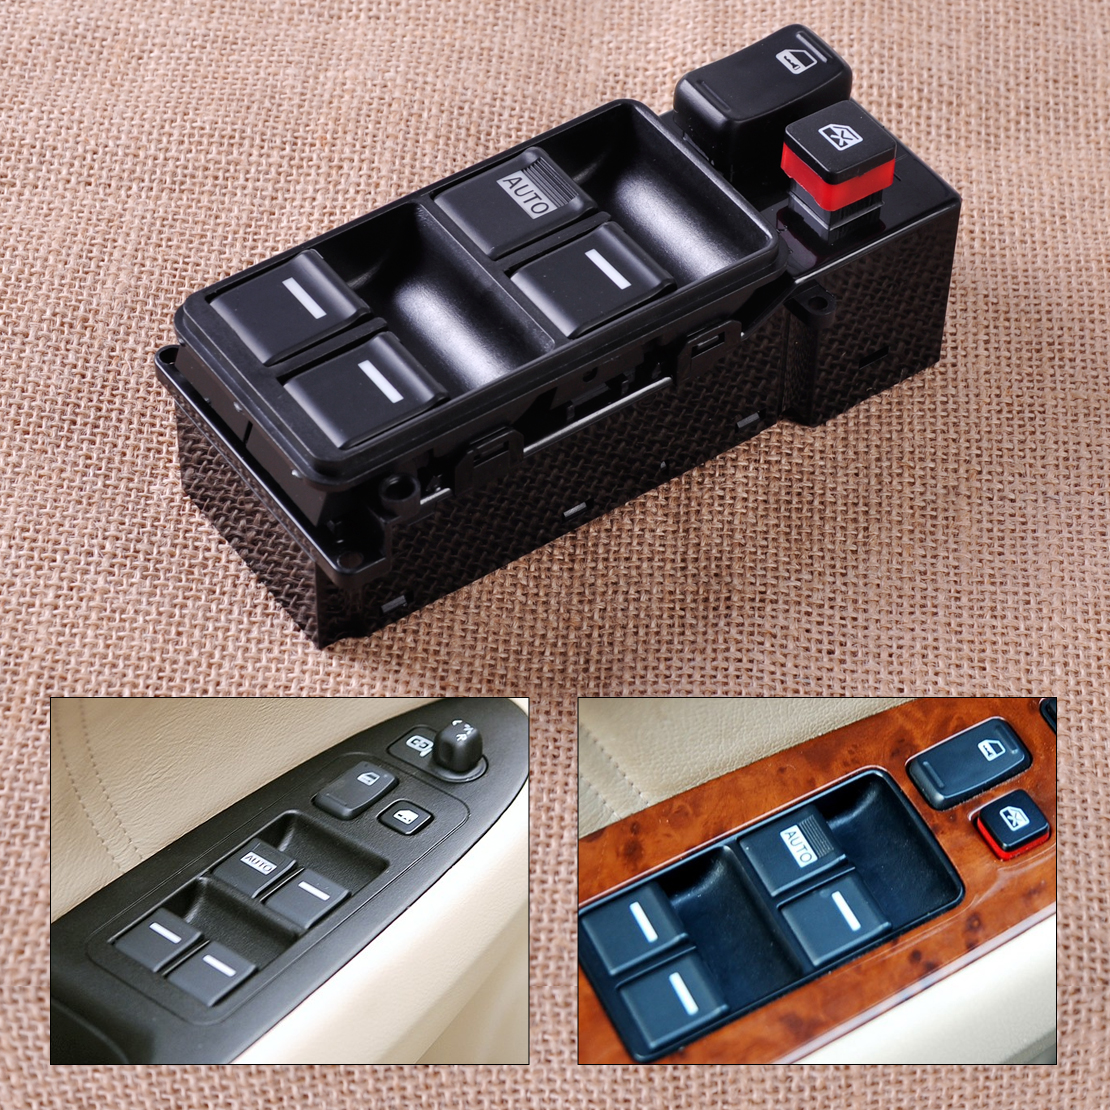 New Car Electric Master Driver Power Window Switch Bezel Control 35750-SDA-H12 for Honda Accord 2003 2004 2005 2006 2007 4 Doors(China (Mainland))